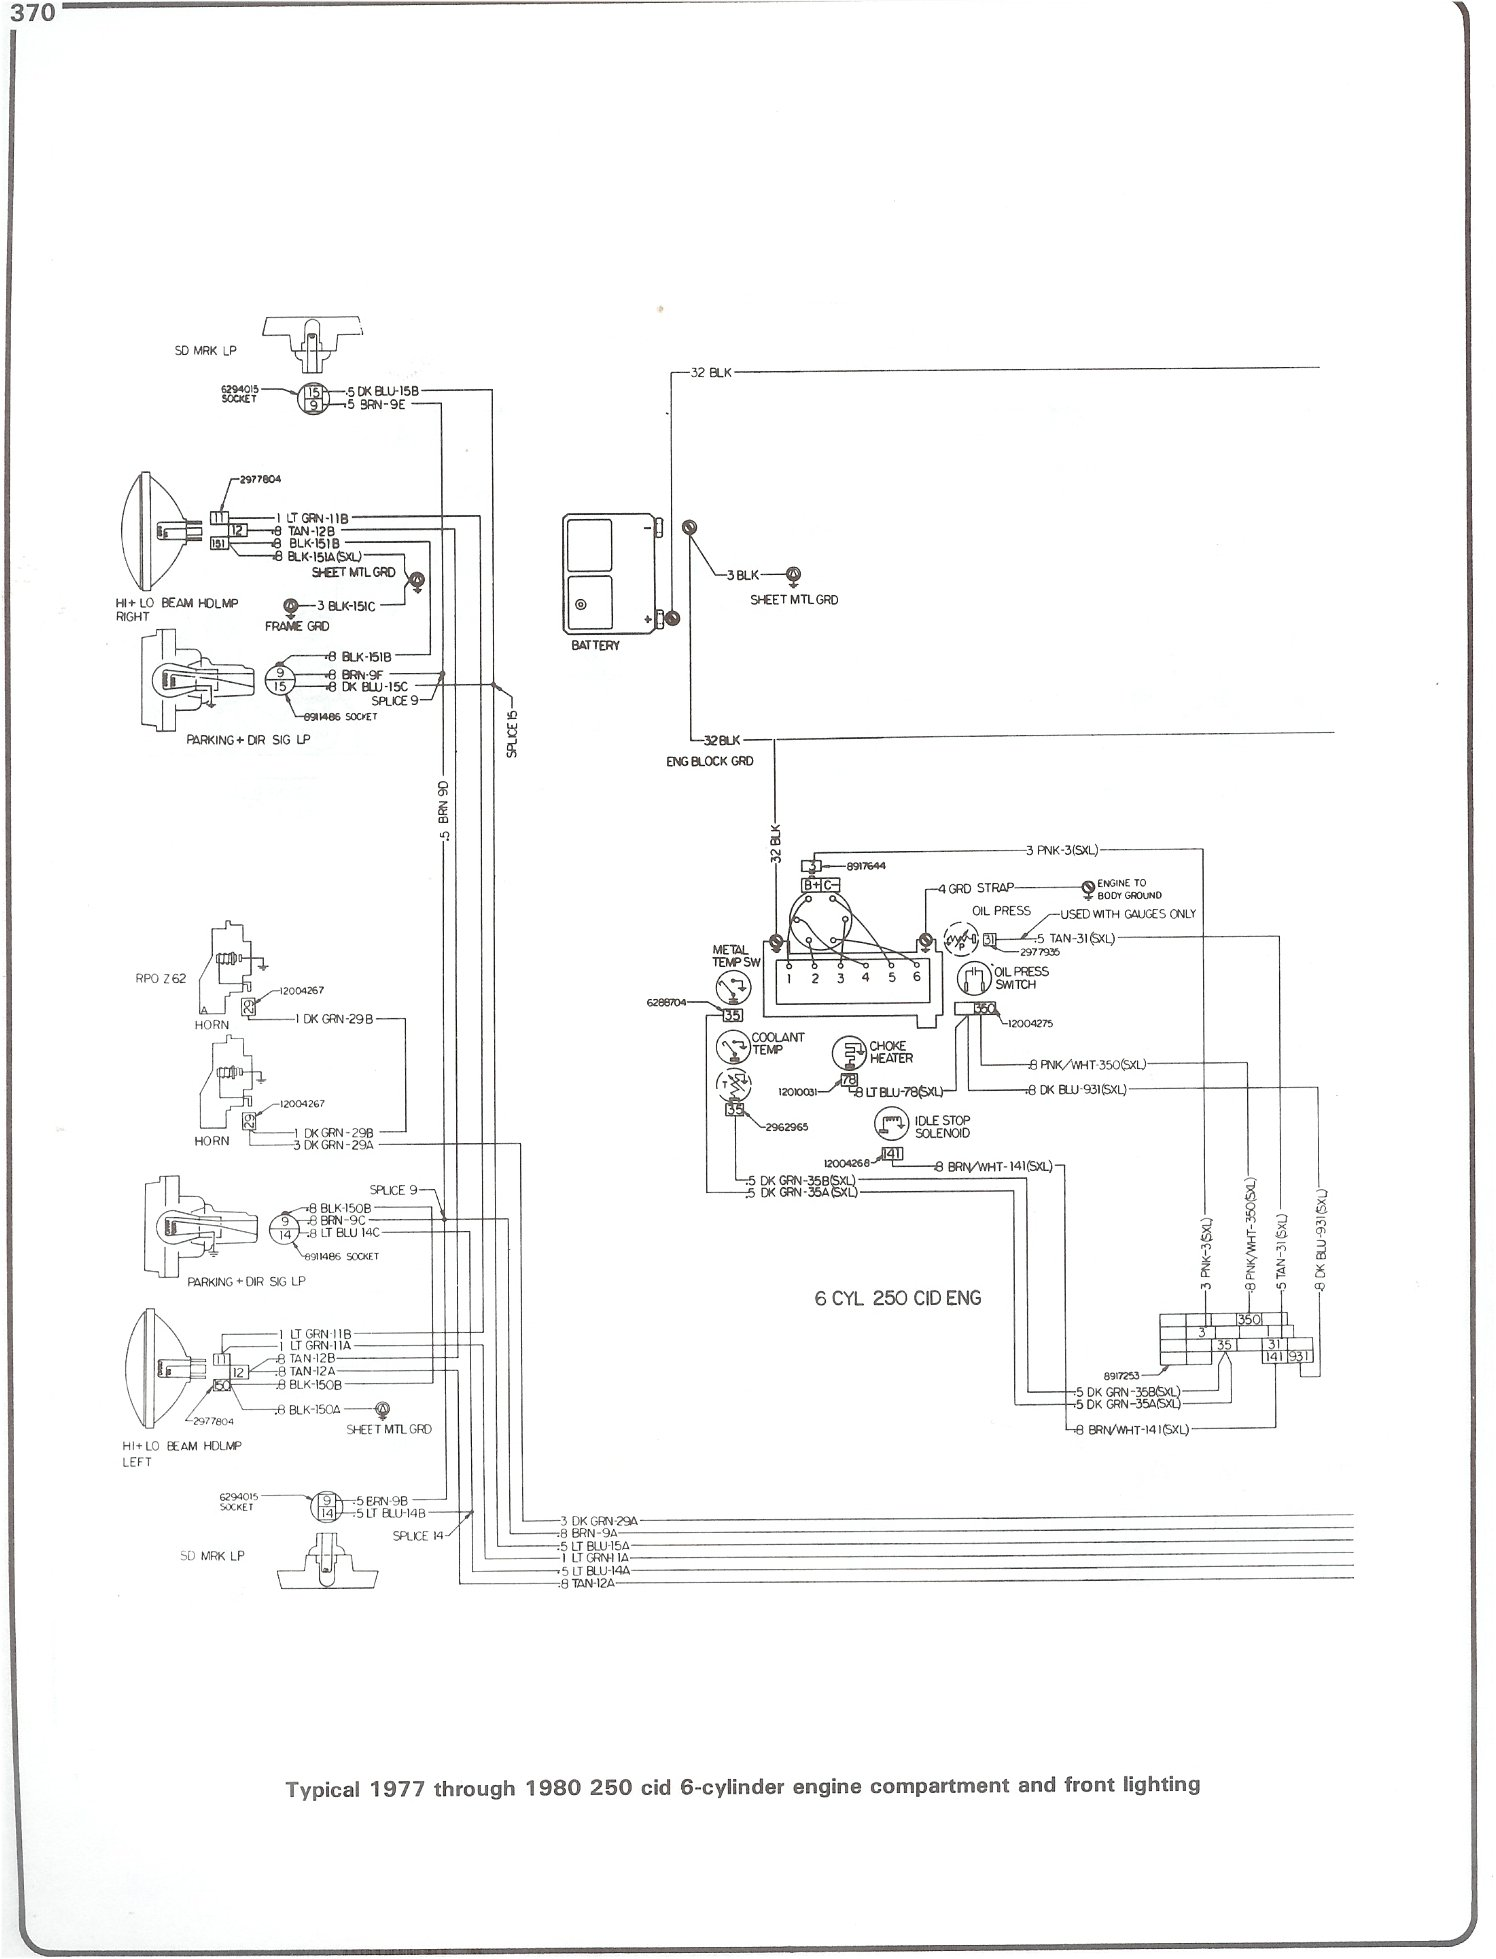 v8 chevy engine wiring diagram 1974 wiring schematic diagramcomplete 73 87 wiring diagrams marine battery switch wiring diagram 77 80 250 i6 engine wiring